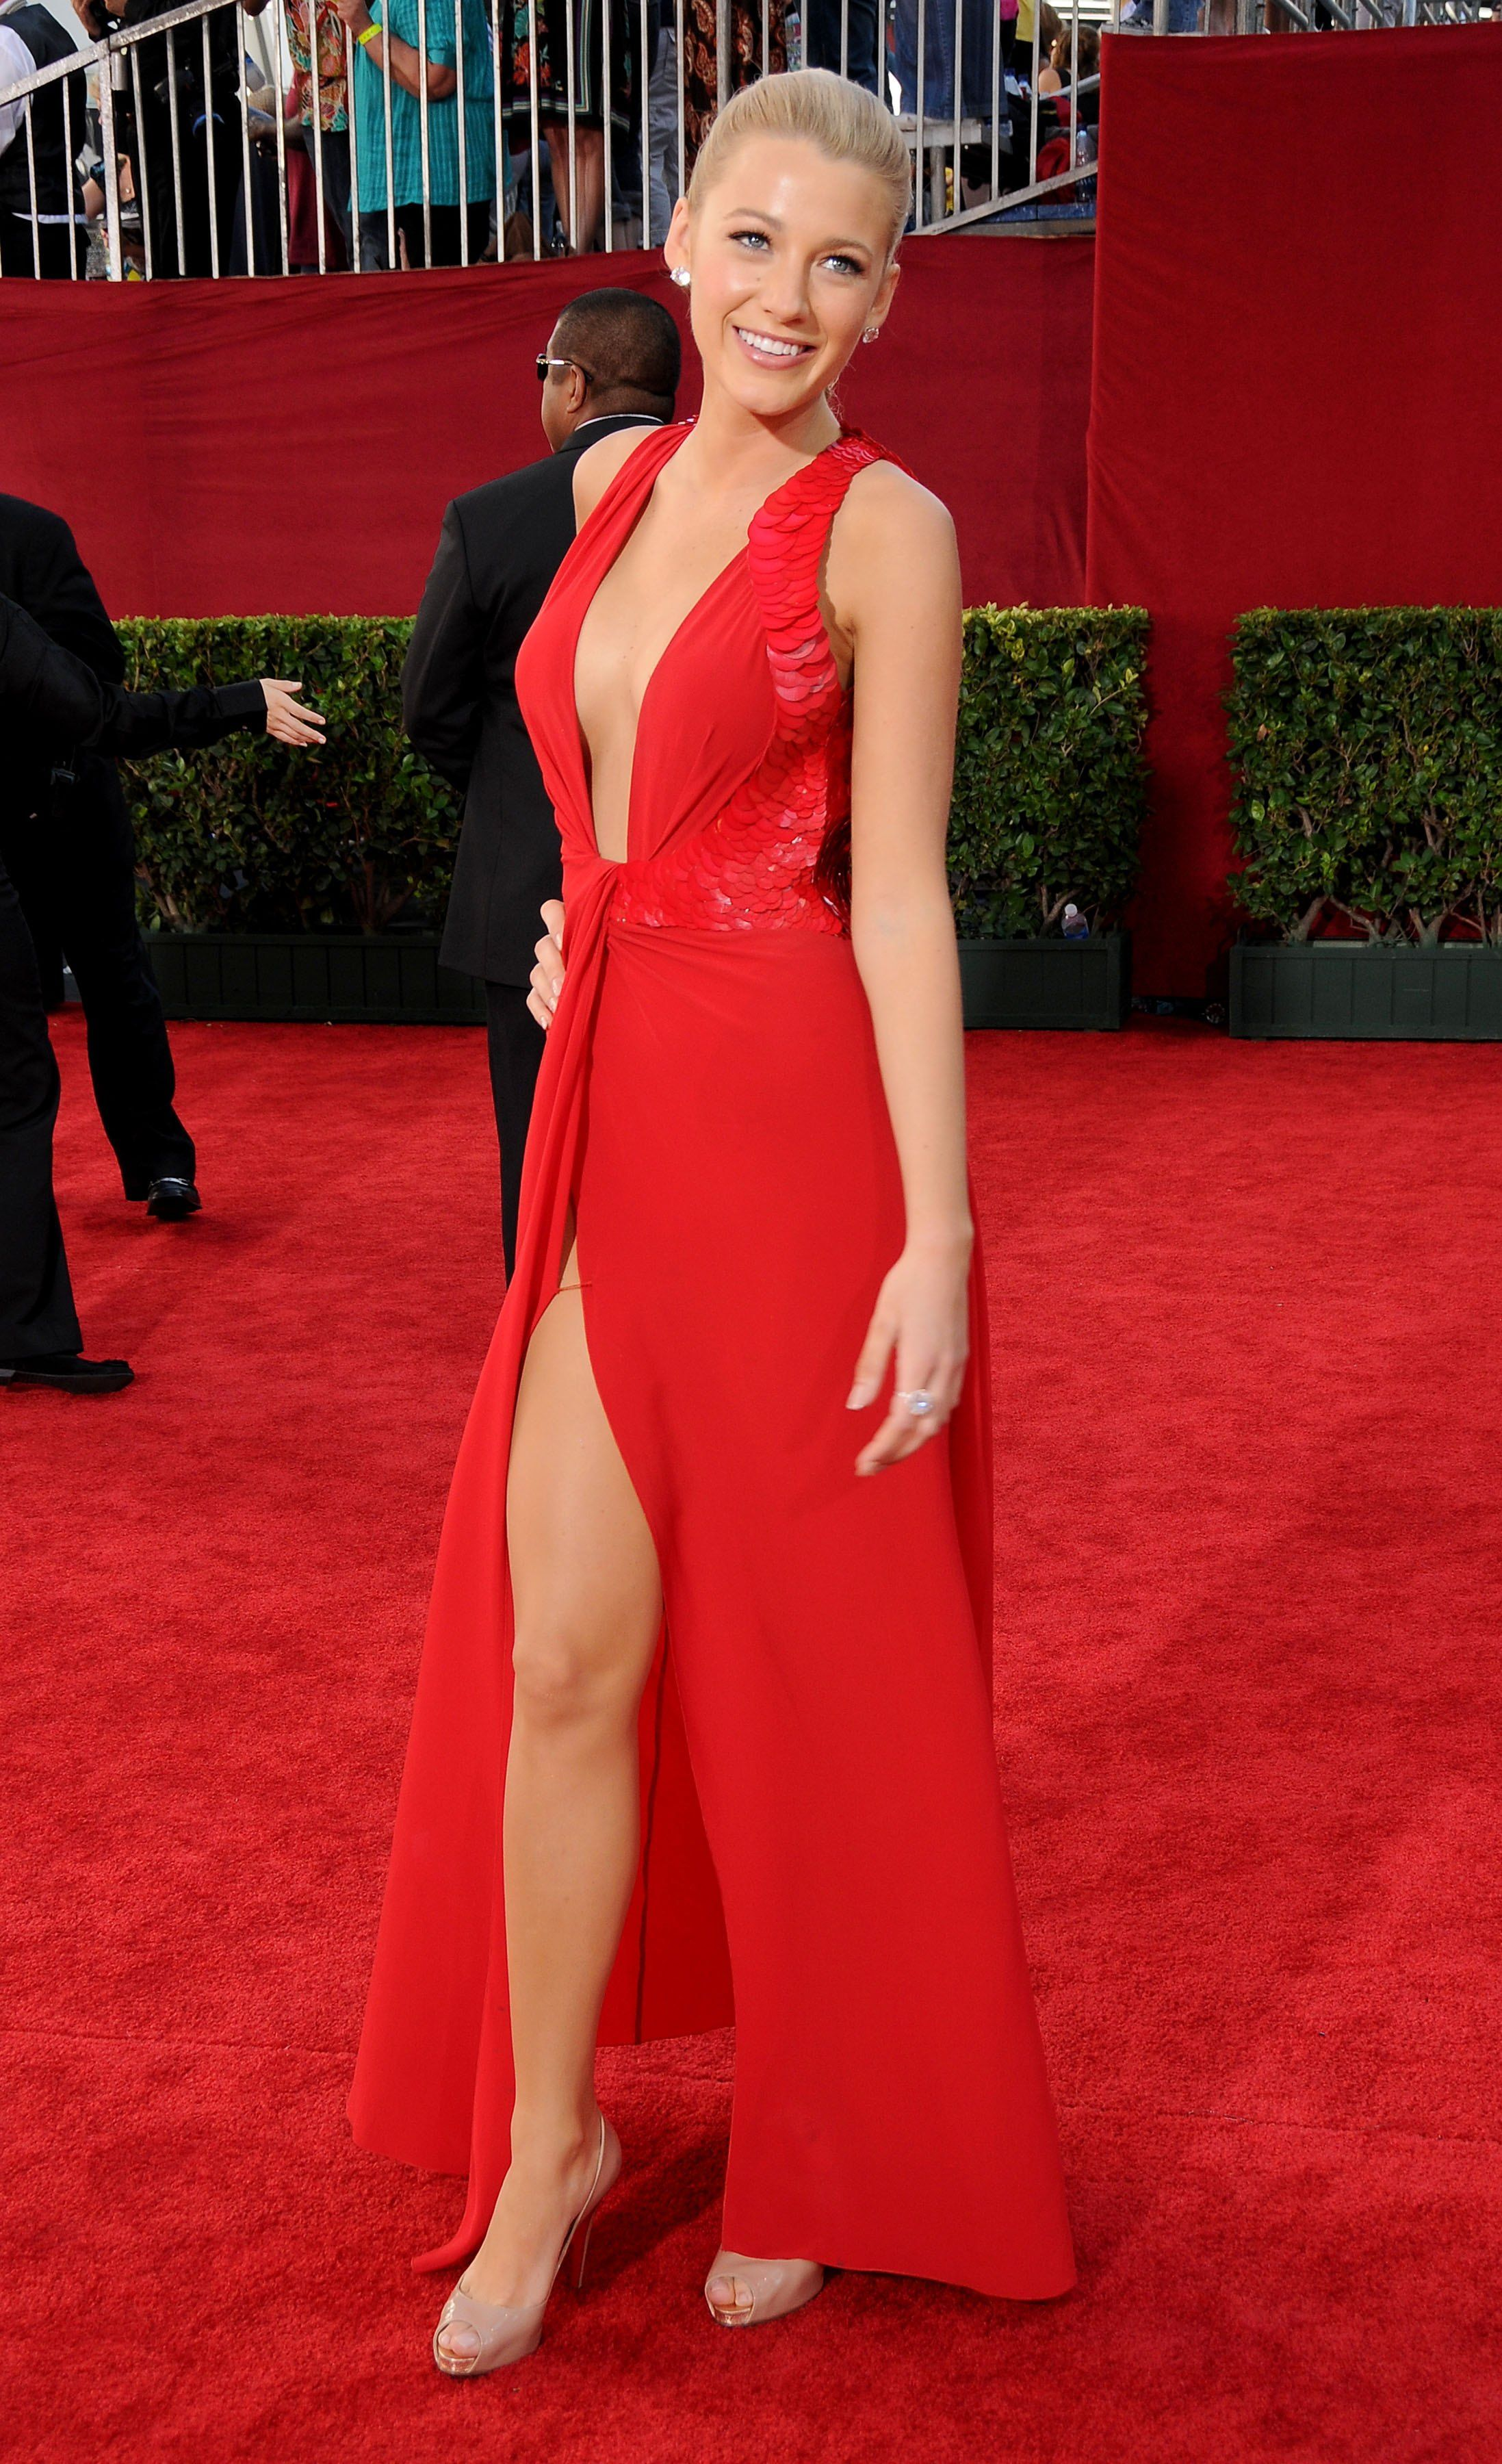 ... gowns worn by celebrities on the red carpet  Blake Lively. Blake  Lively 7a09a194f91a